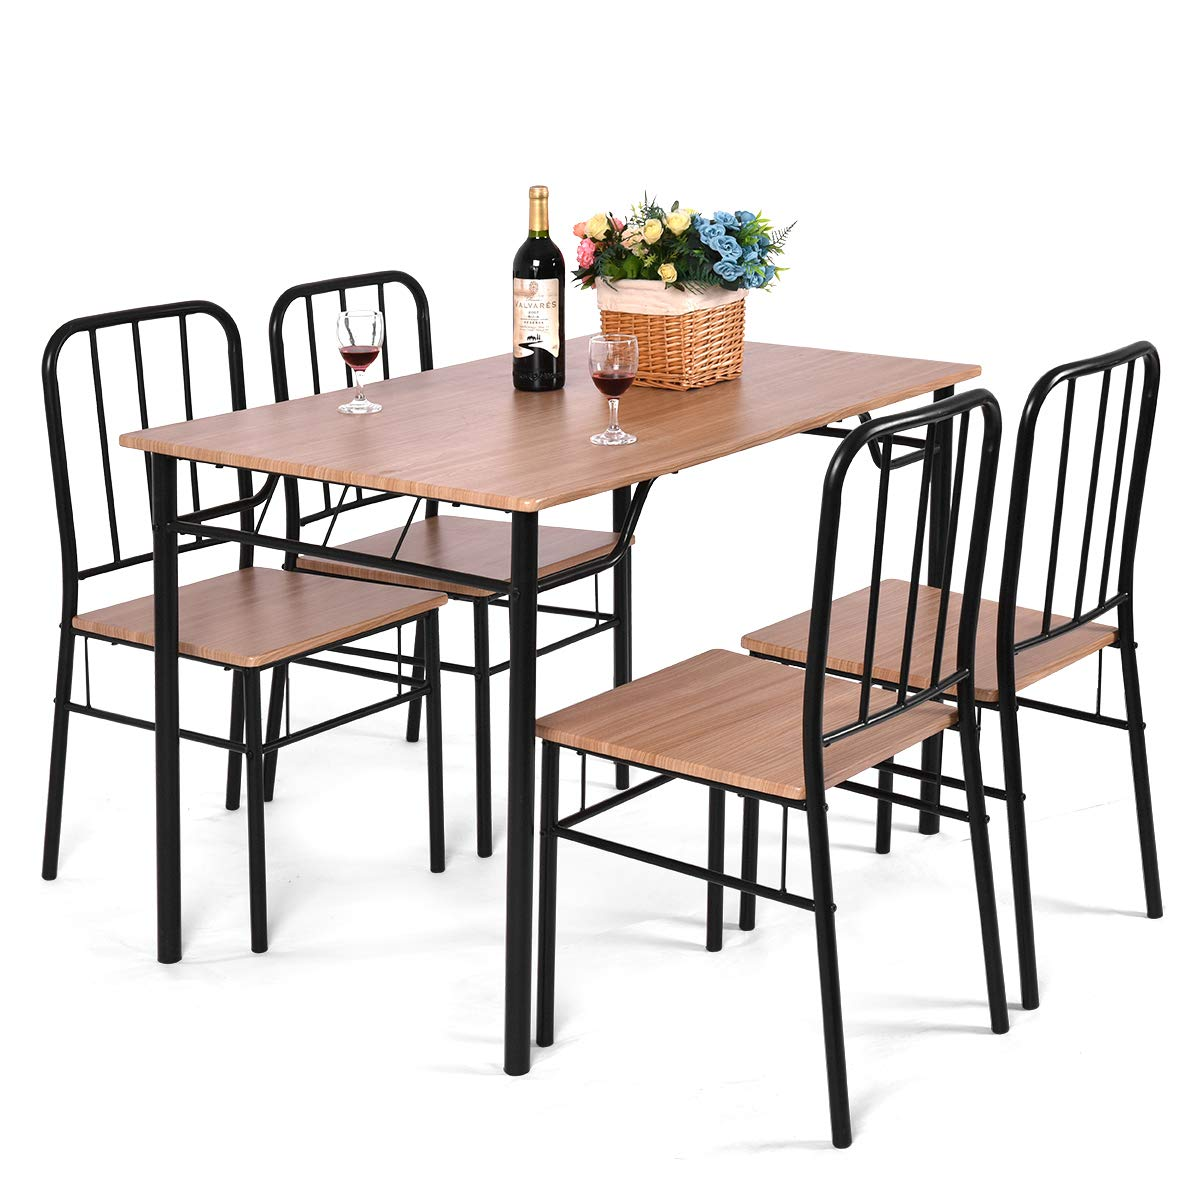 Giantex 5 Piece Dining Set Table and 4 Chairs Metal Wood Home Kitchen Modern Furniture by Giantex